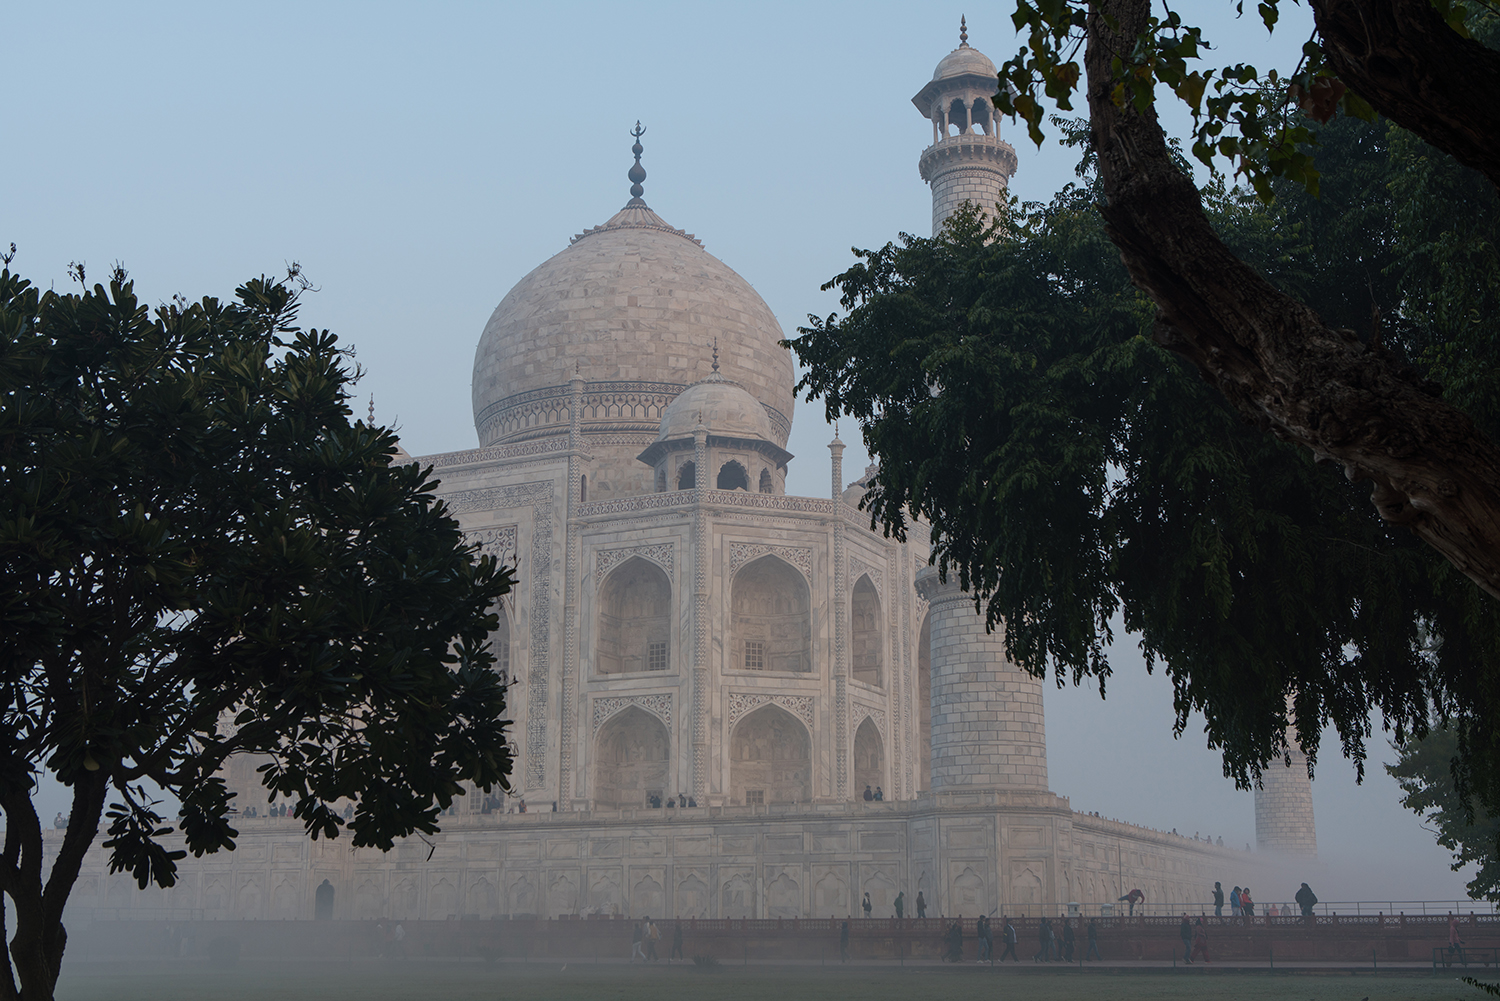 The Taj Mahal through the surrounding trees.